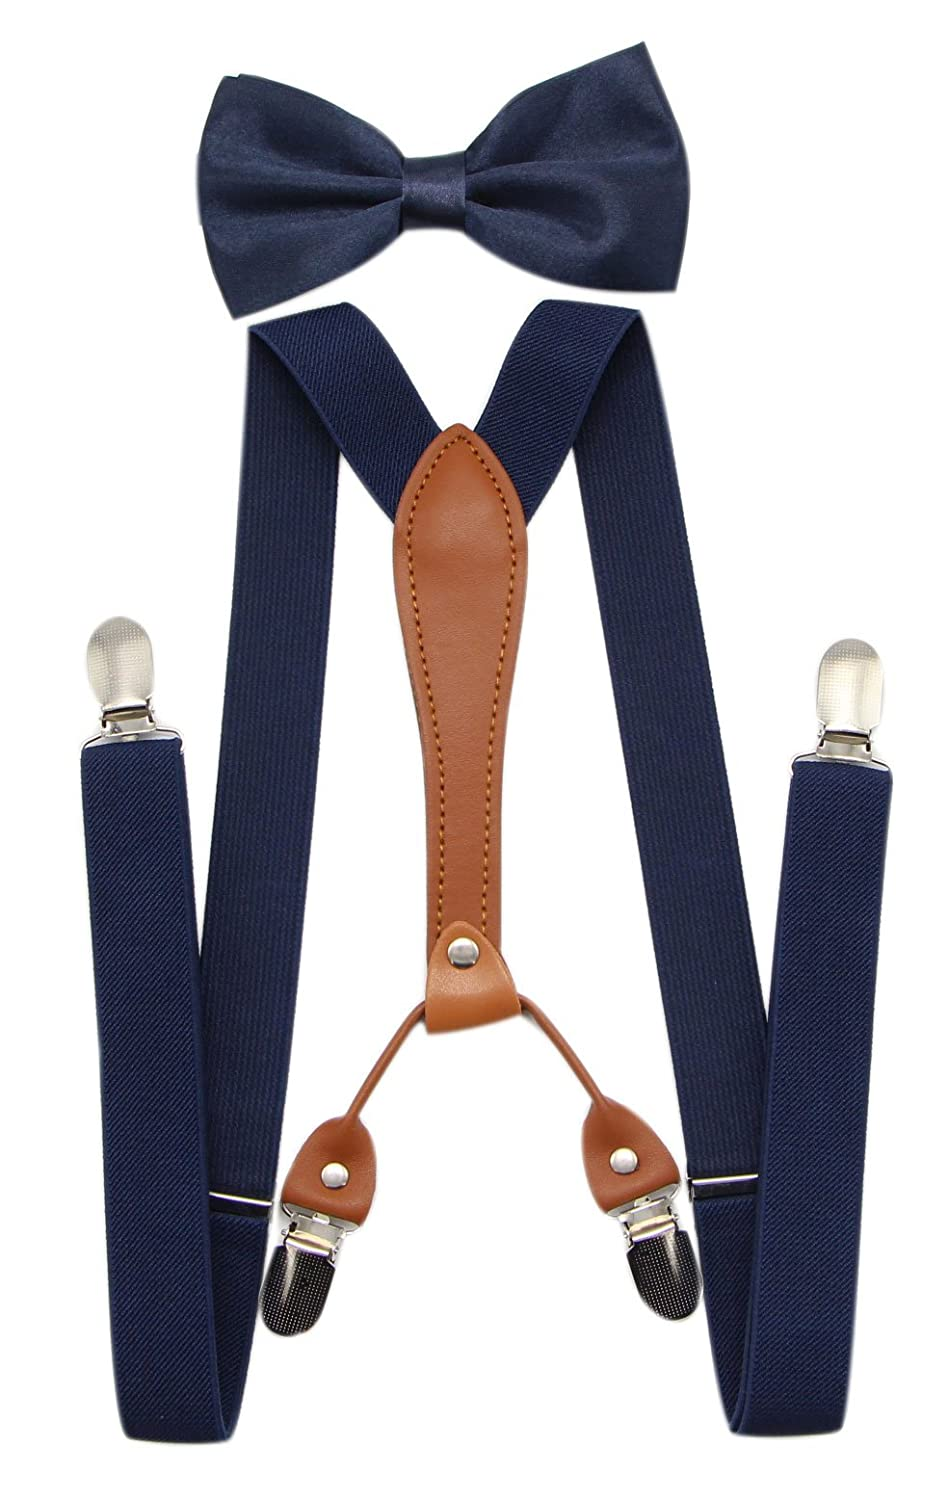 Men's Vintage Style Suspenders JAIFEI Suspenders & Bowtie Set- Mens Elastic X Band Suspenders + Bowtie For Wedding Formal Events $10.99 AT vintagedancer.com